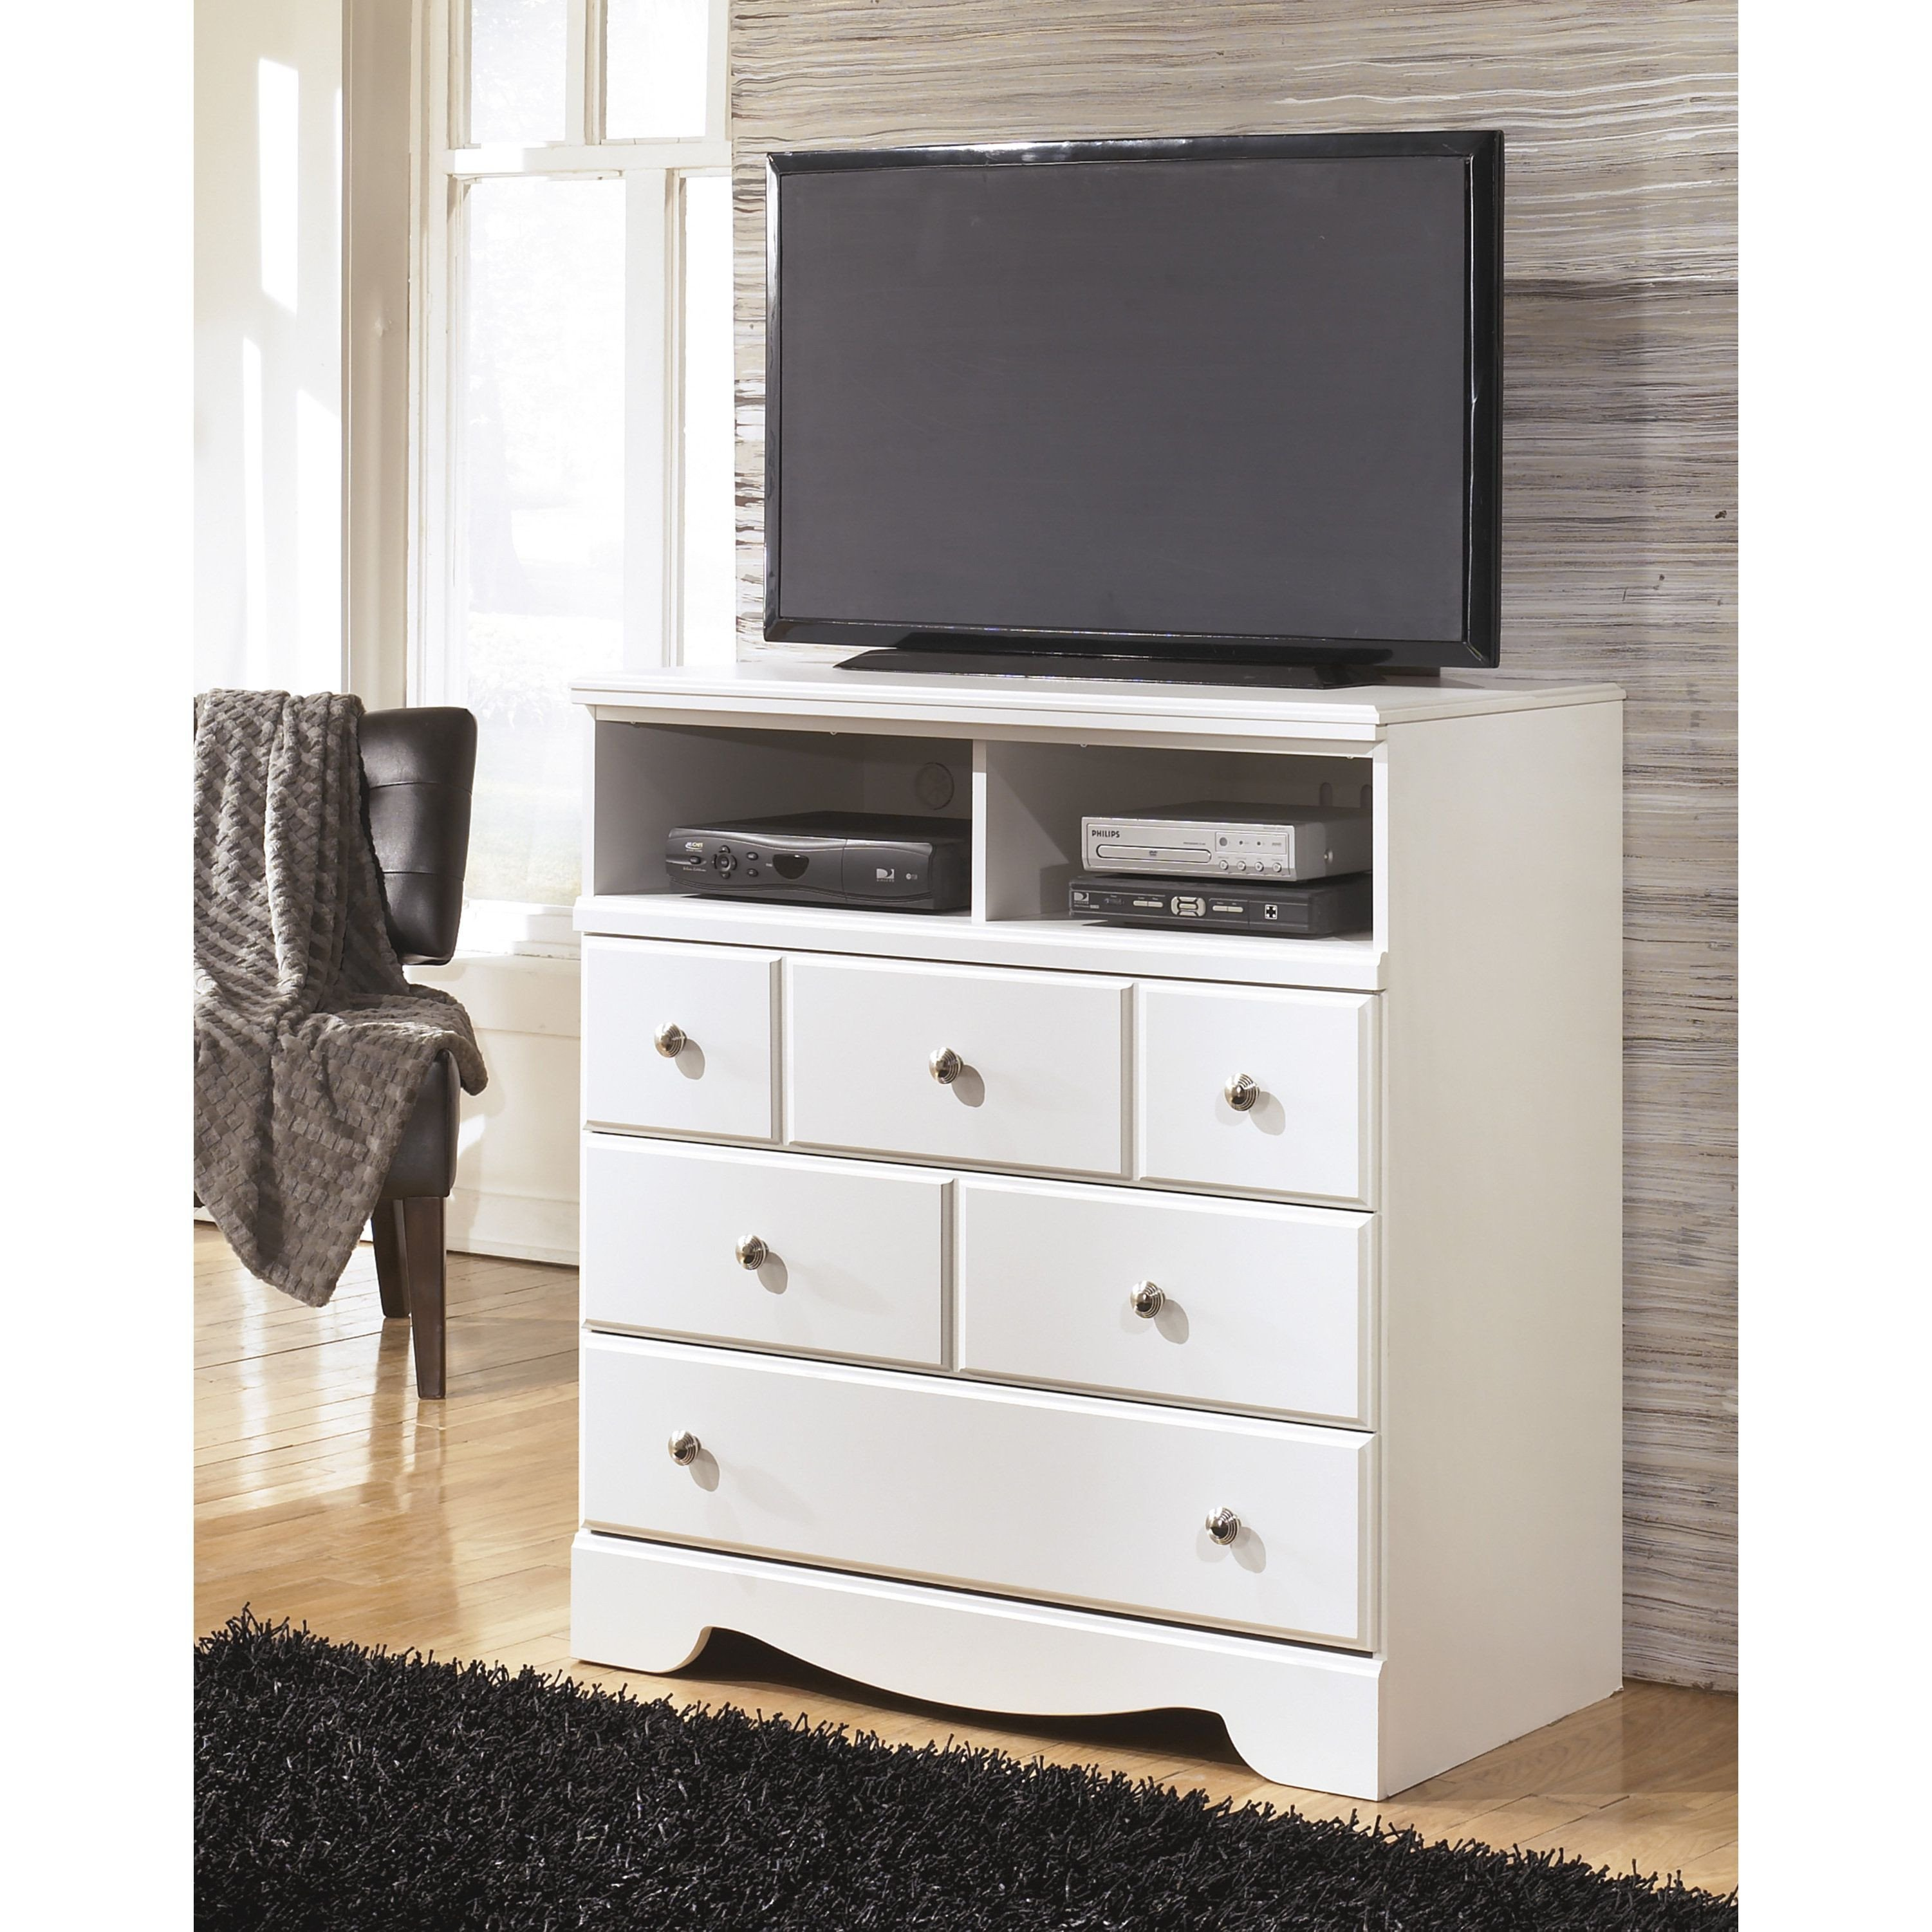 Good Size Tv for Bedroom Unique Signature Designs by ashley Weeki White Media Chest